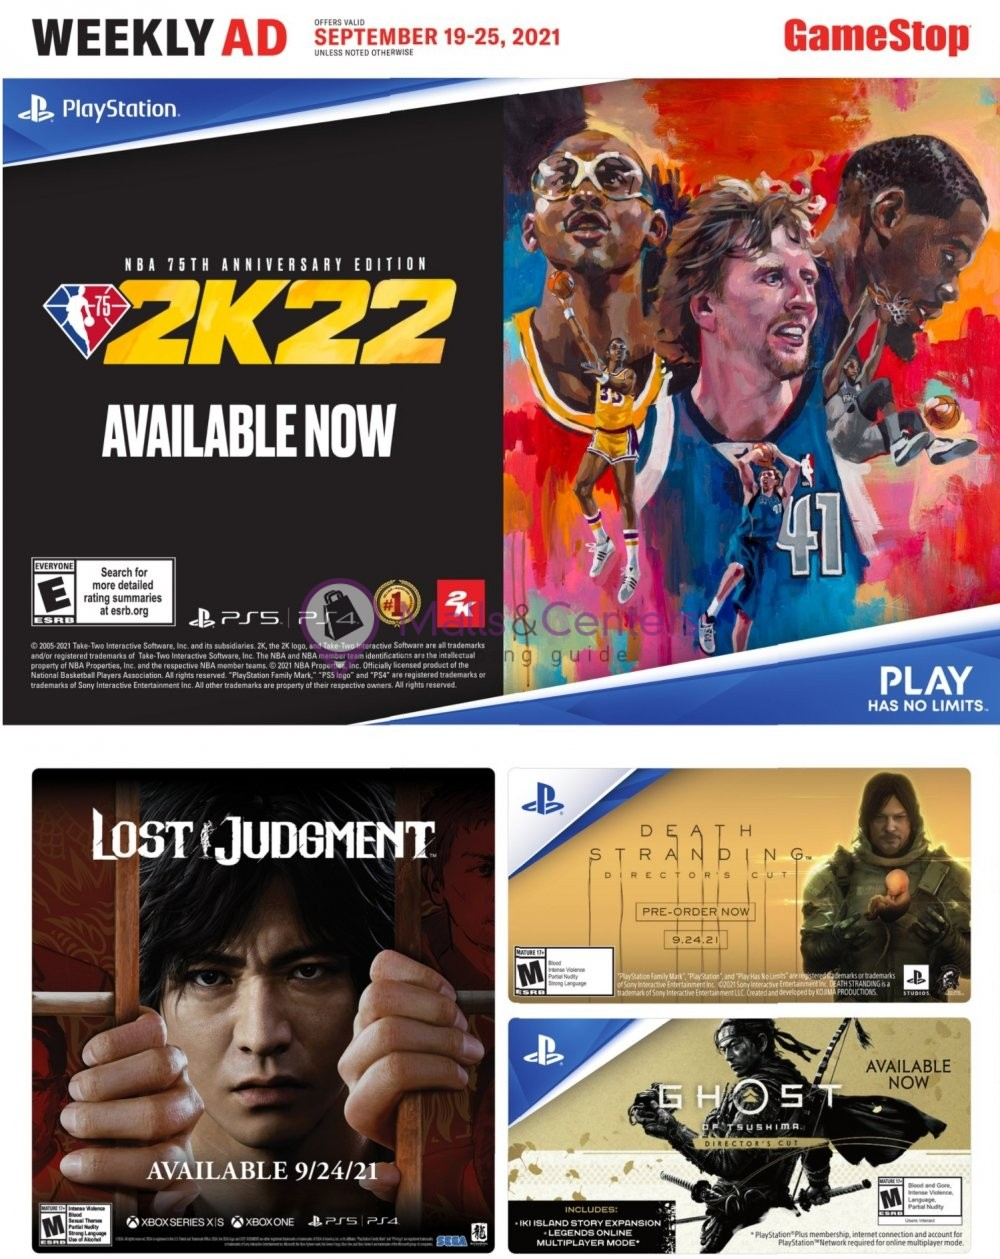 weekly ads EB Games - page 1 - mallscenters.com